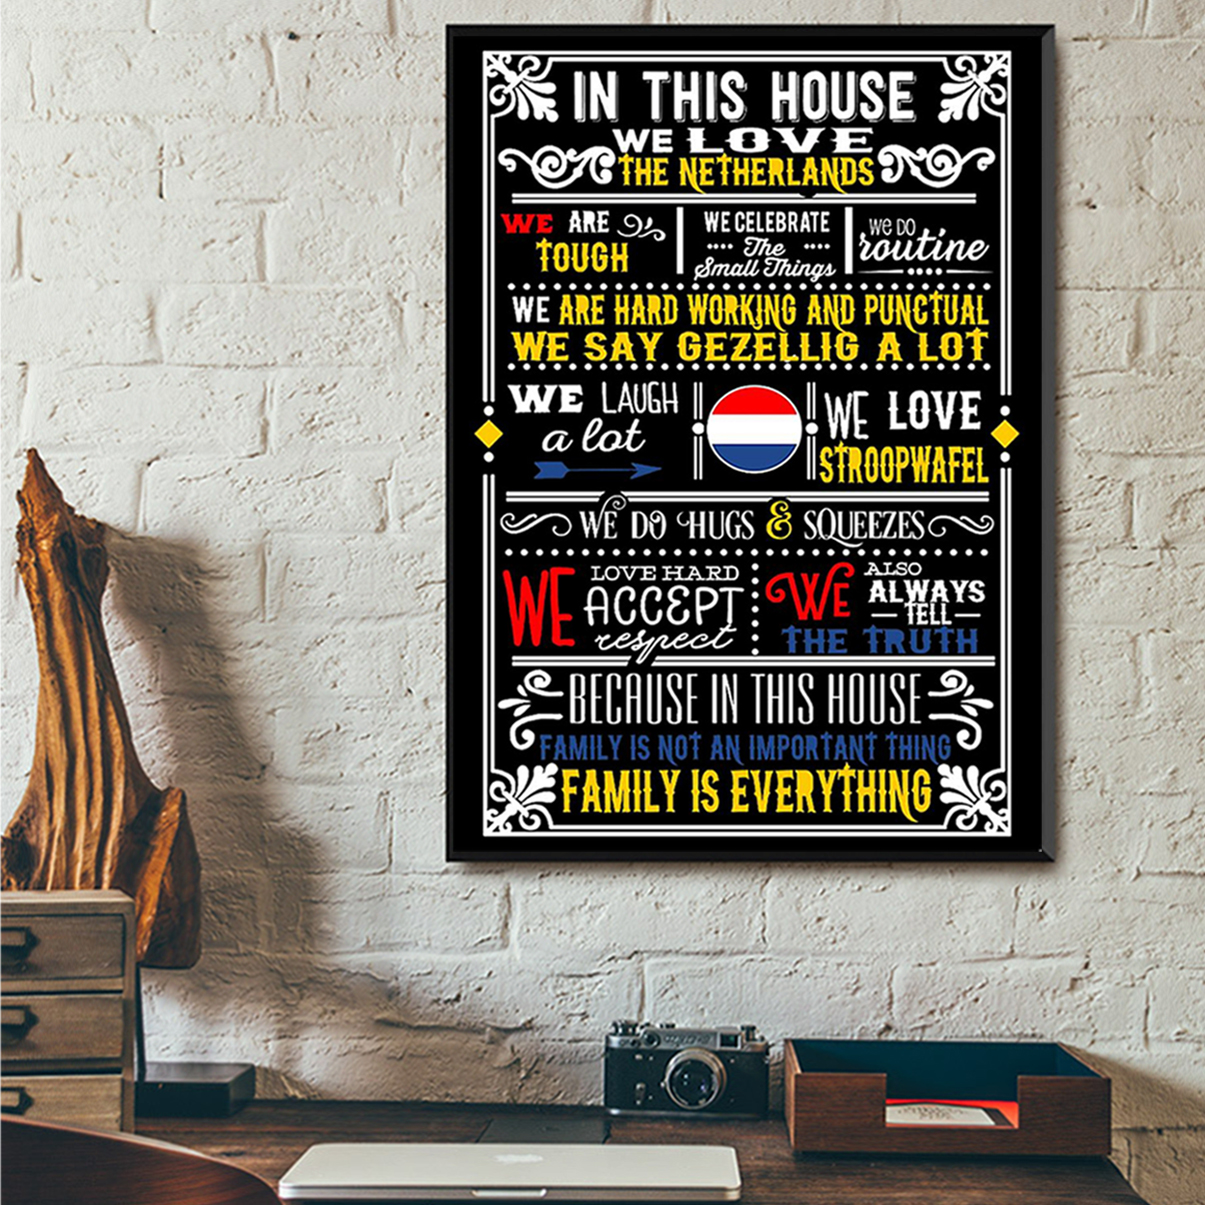 In this house we love netherlands poster A2